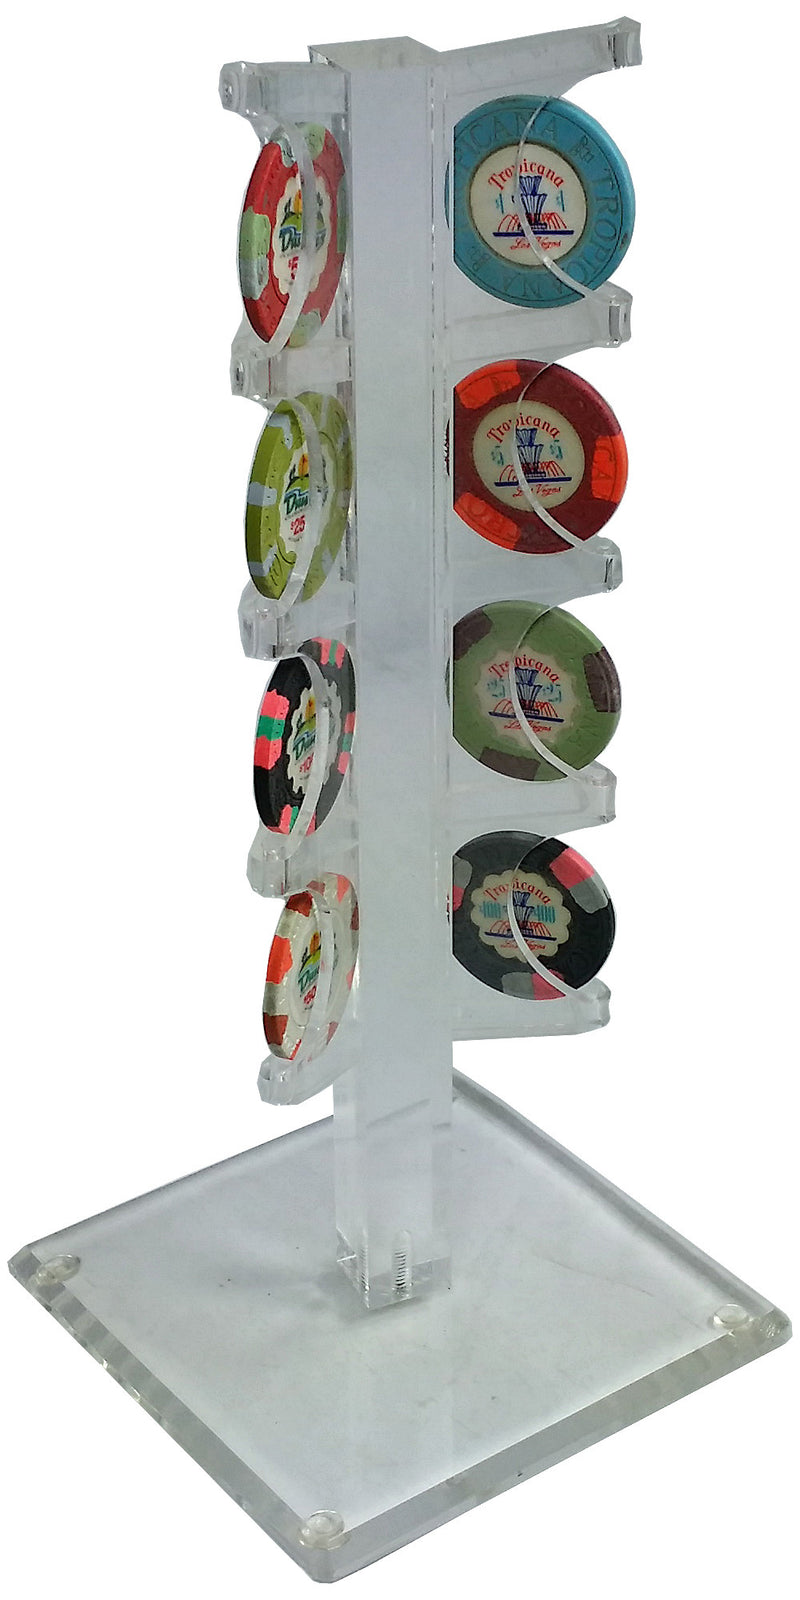 Chip Display Acrylic Tree for 8 Poker Chips - Spinettis Gaming - 2